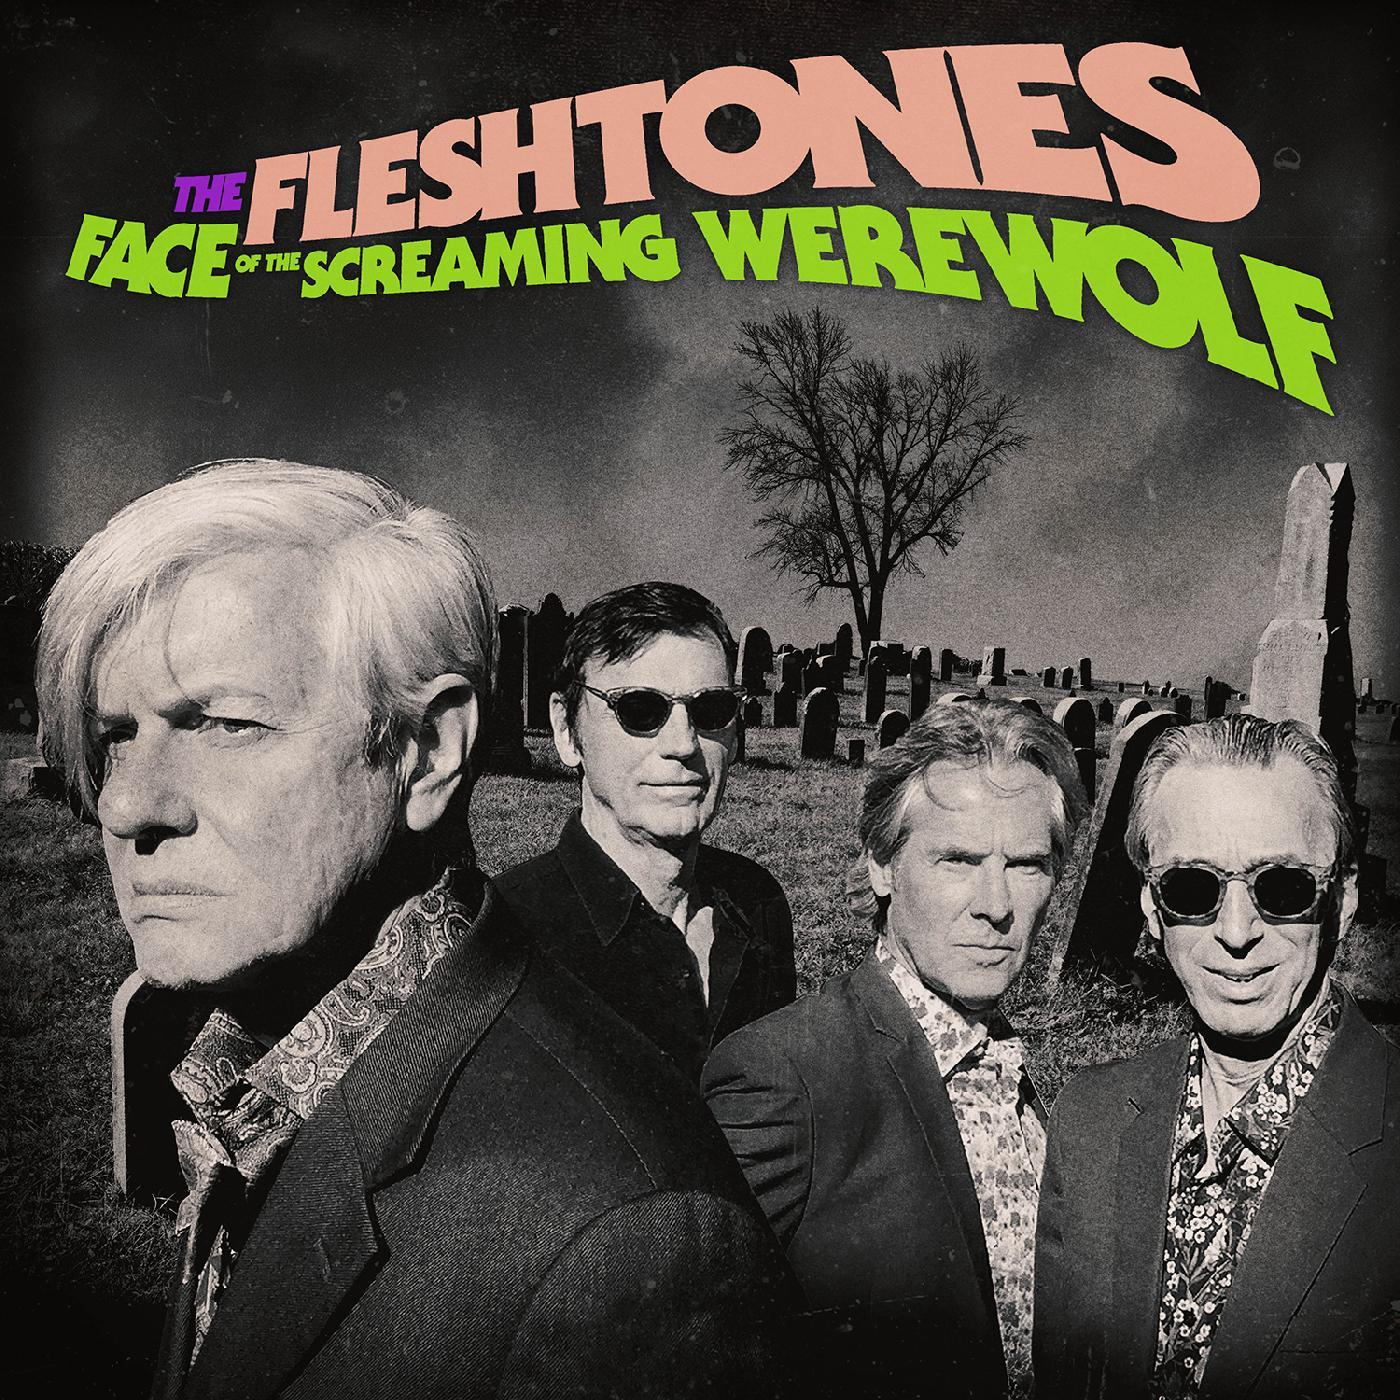 The Fleshtones - Face Of The Screaming Werewolf [RSD Drops Oct 2020]